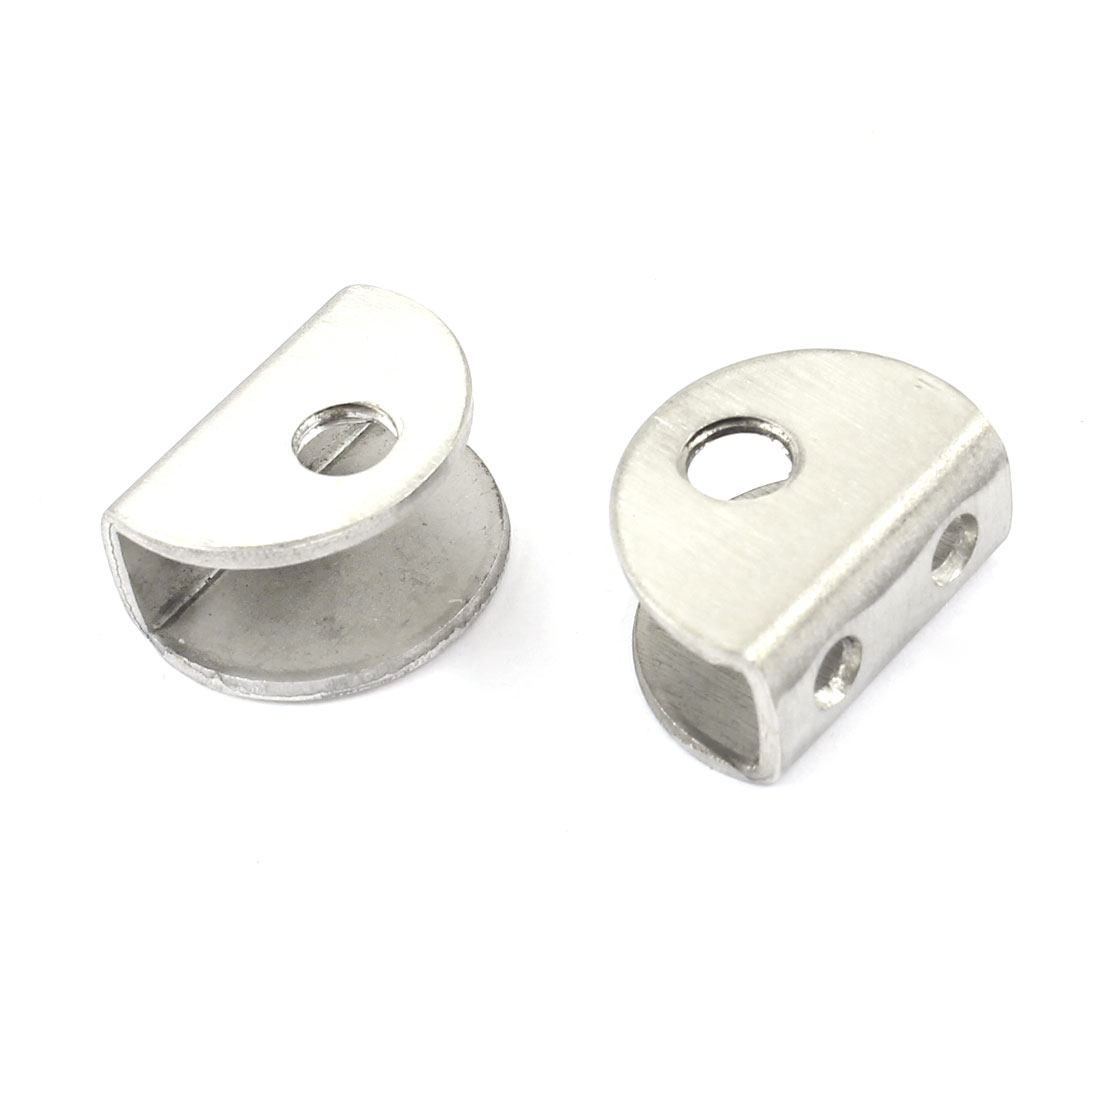 2 Pcs Stainless Steel Half Round Shelf Support Clamp for 8mm Thickness Glass